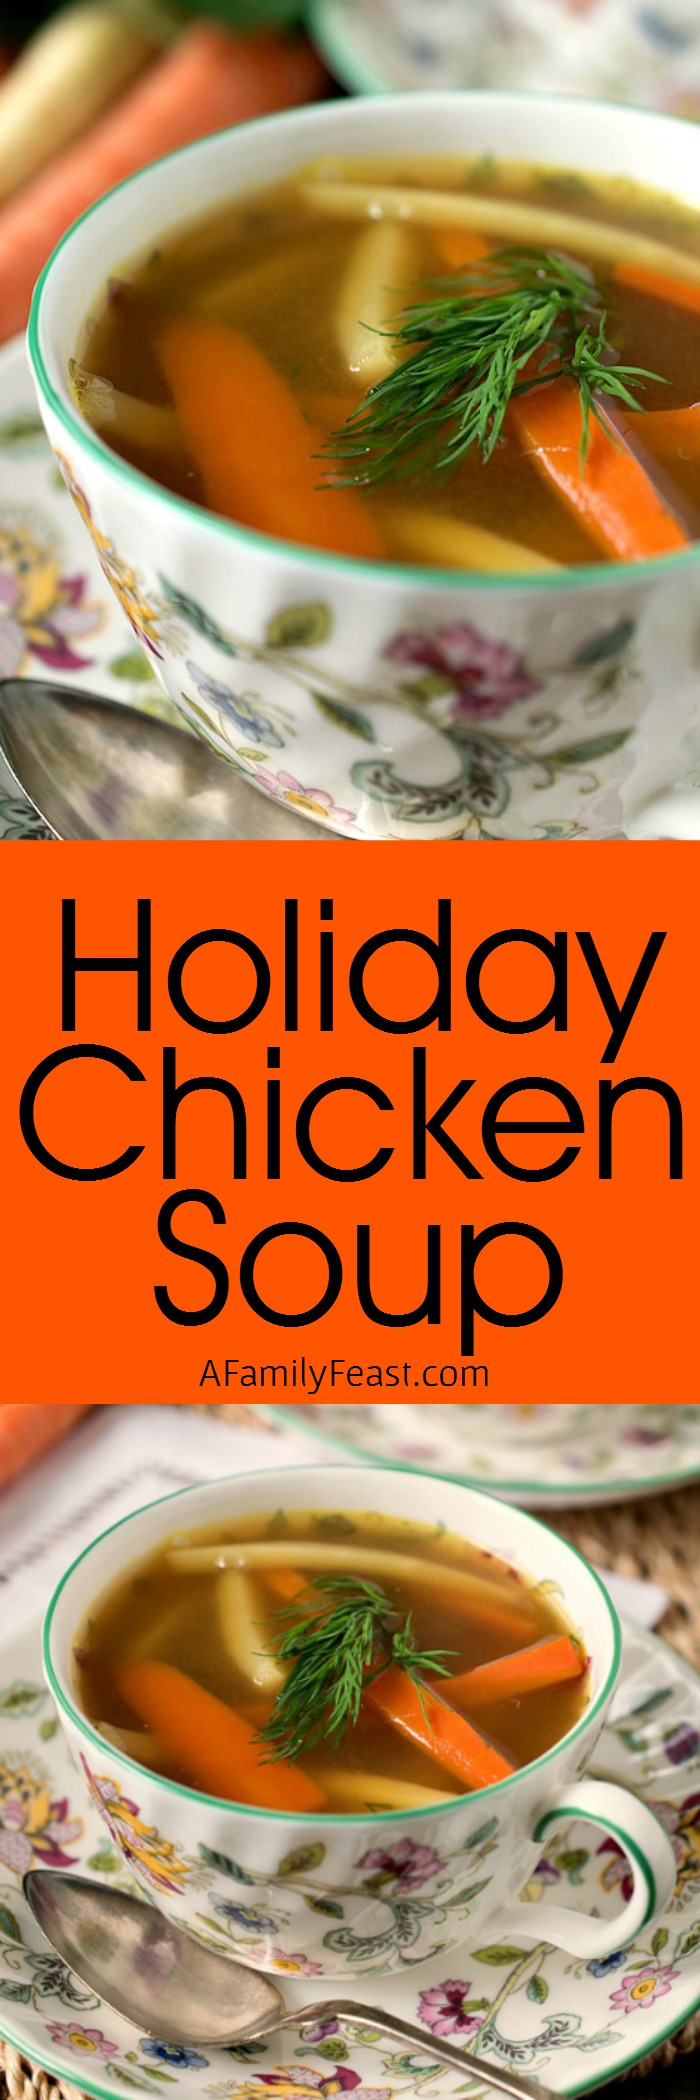 Holiday Chicken Soup - This ultra rich chicken and vegetable soup makes a special addition to any holiday meal!